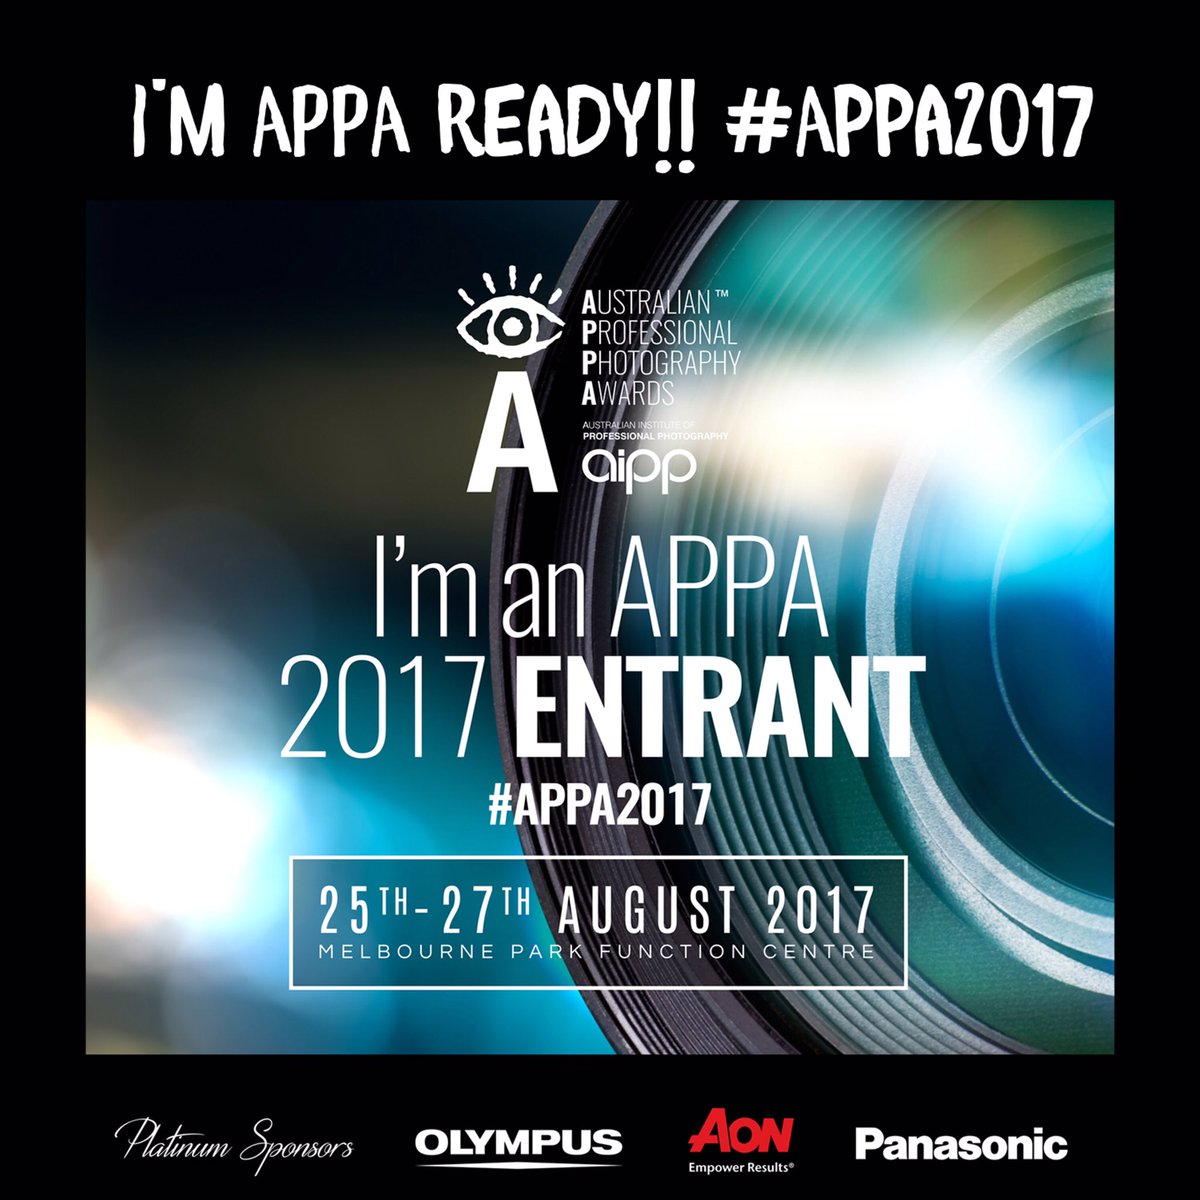 APPA 2017 hits Melbourne 25-27 Aug. It&#39;s party time!  #APPA2017 #AIPP #Awards #Melbourne<br>http://pic.twitter.com/z1aICK44ao